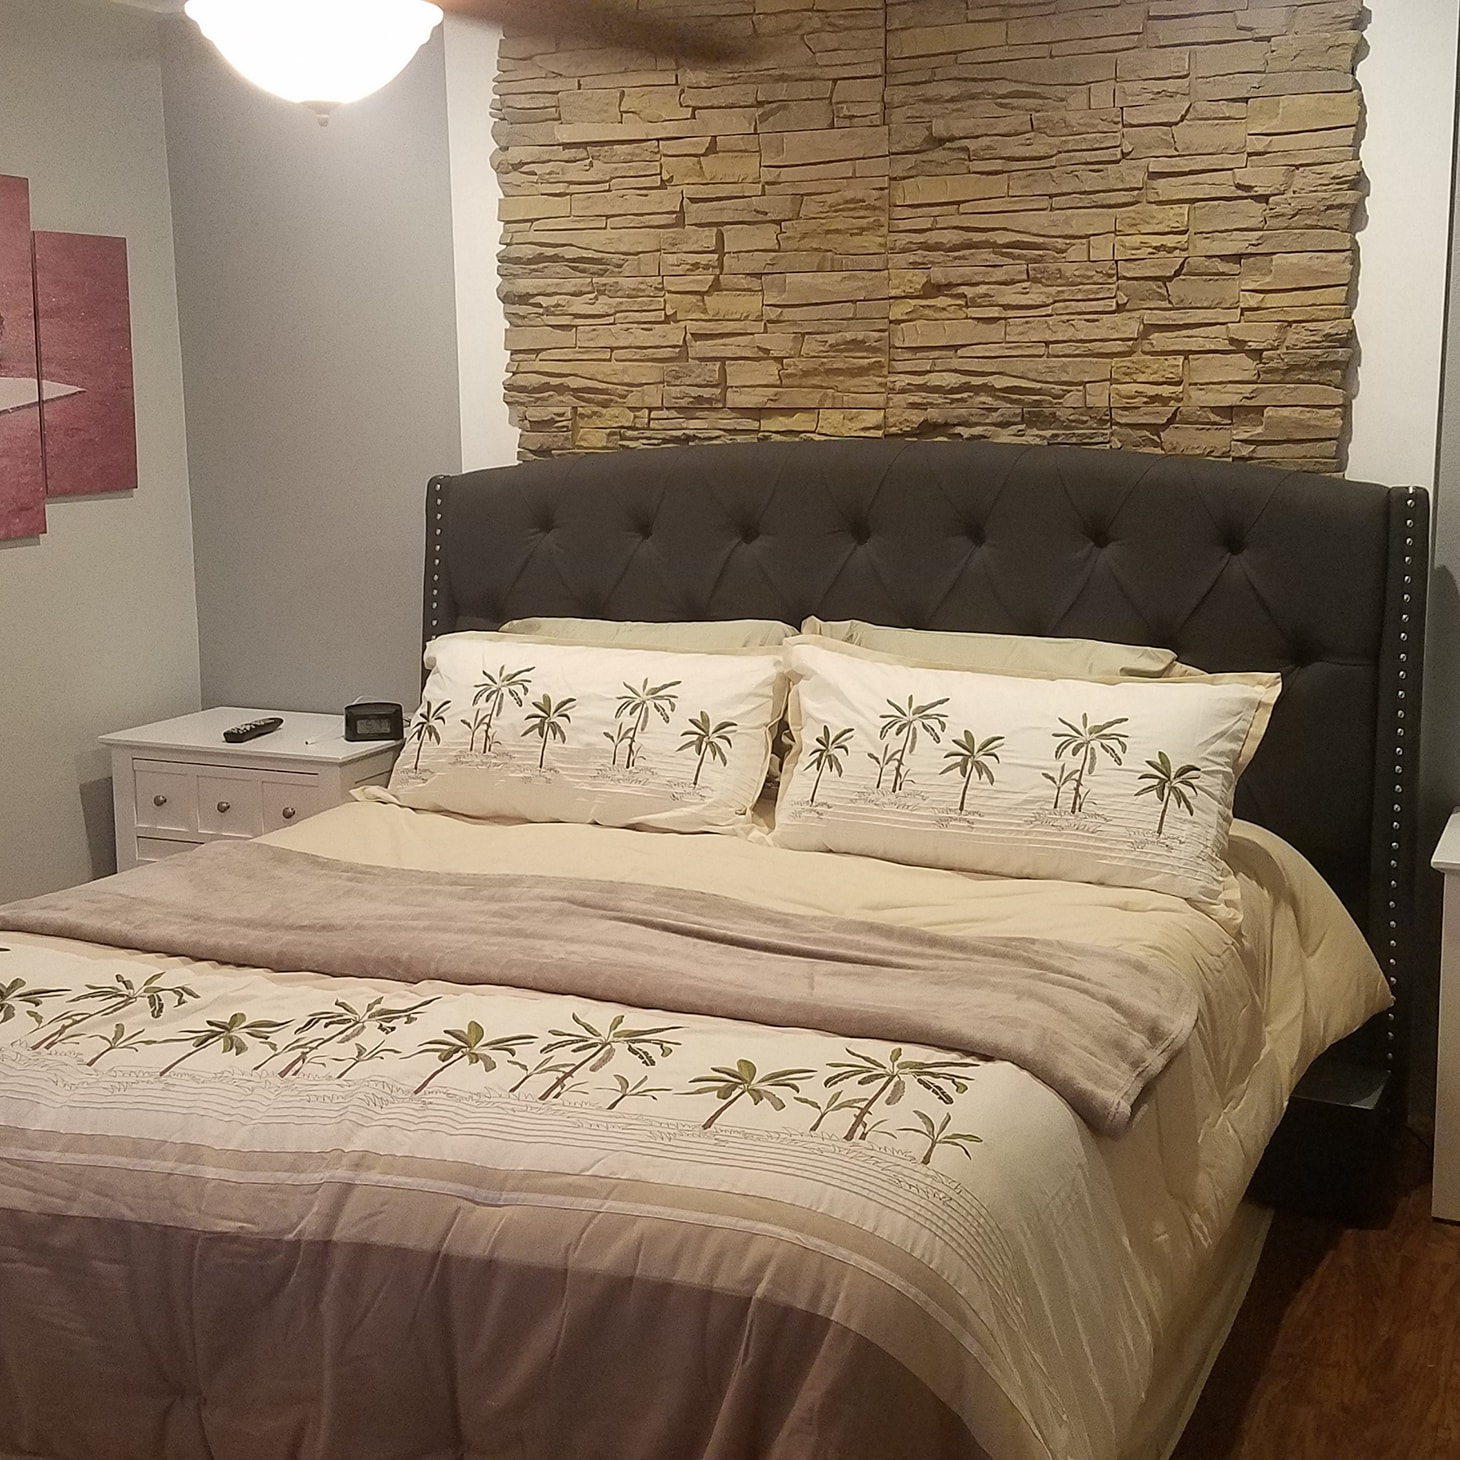 Accent Walls In Bedroom: Bedroom Faux Stone Accent Walls By Kevin